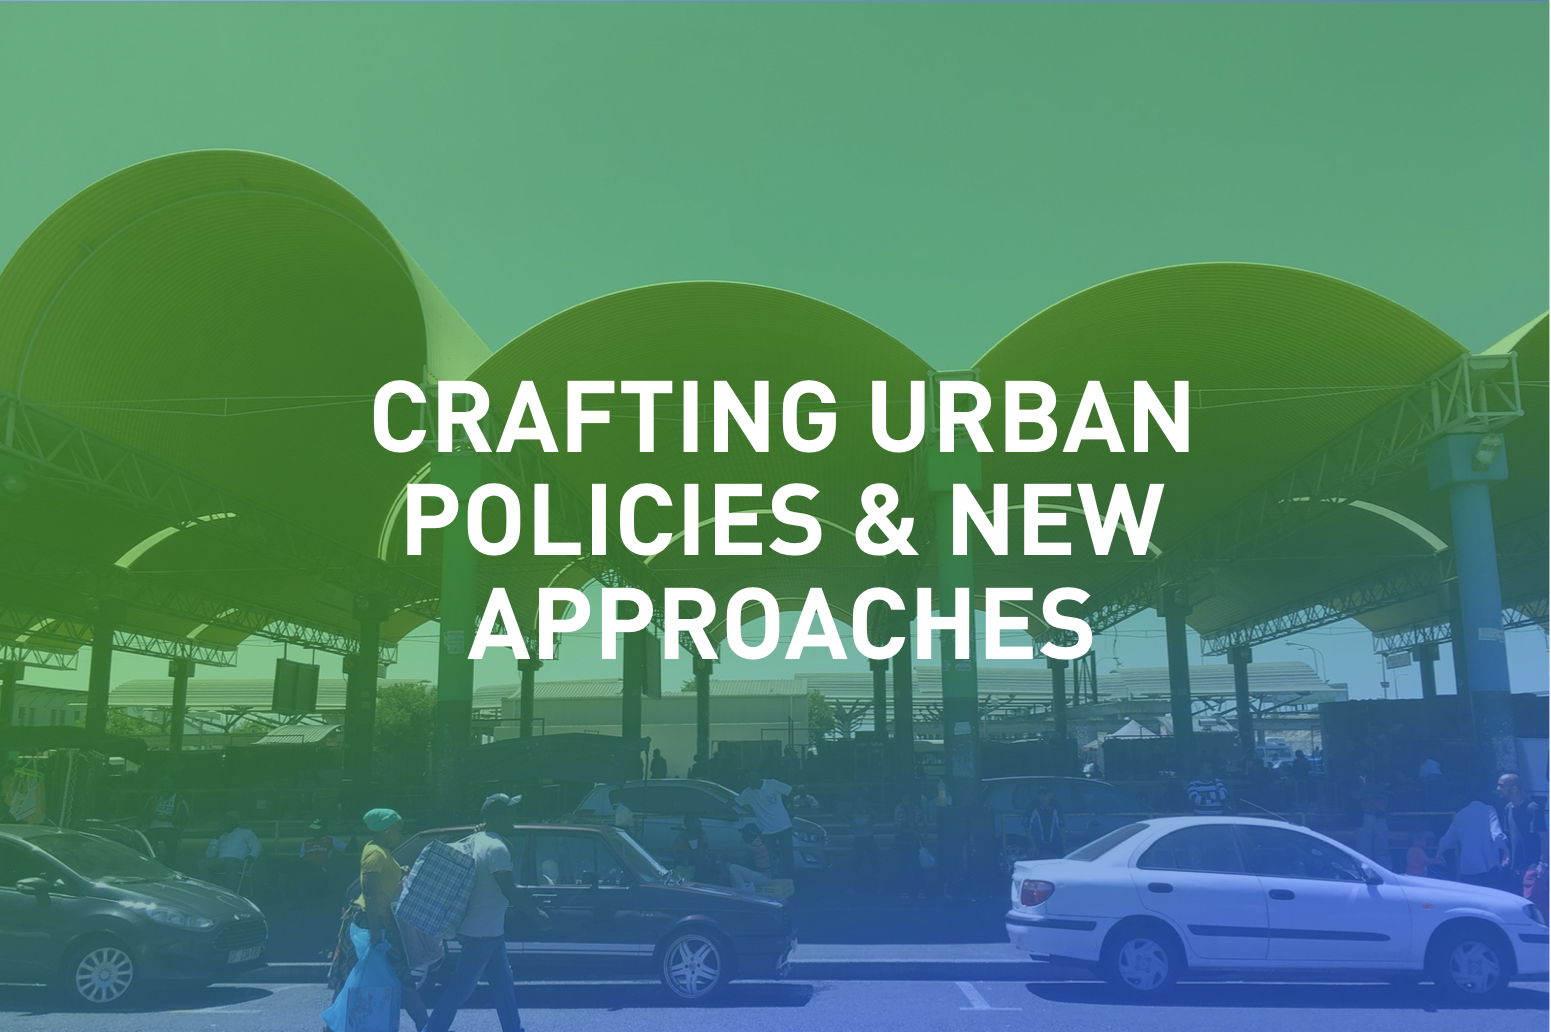 Working at the forefront of progressive urban policies, learning from new insights and ideas around the world.